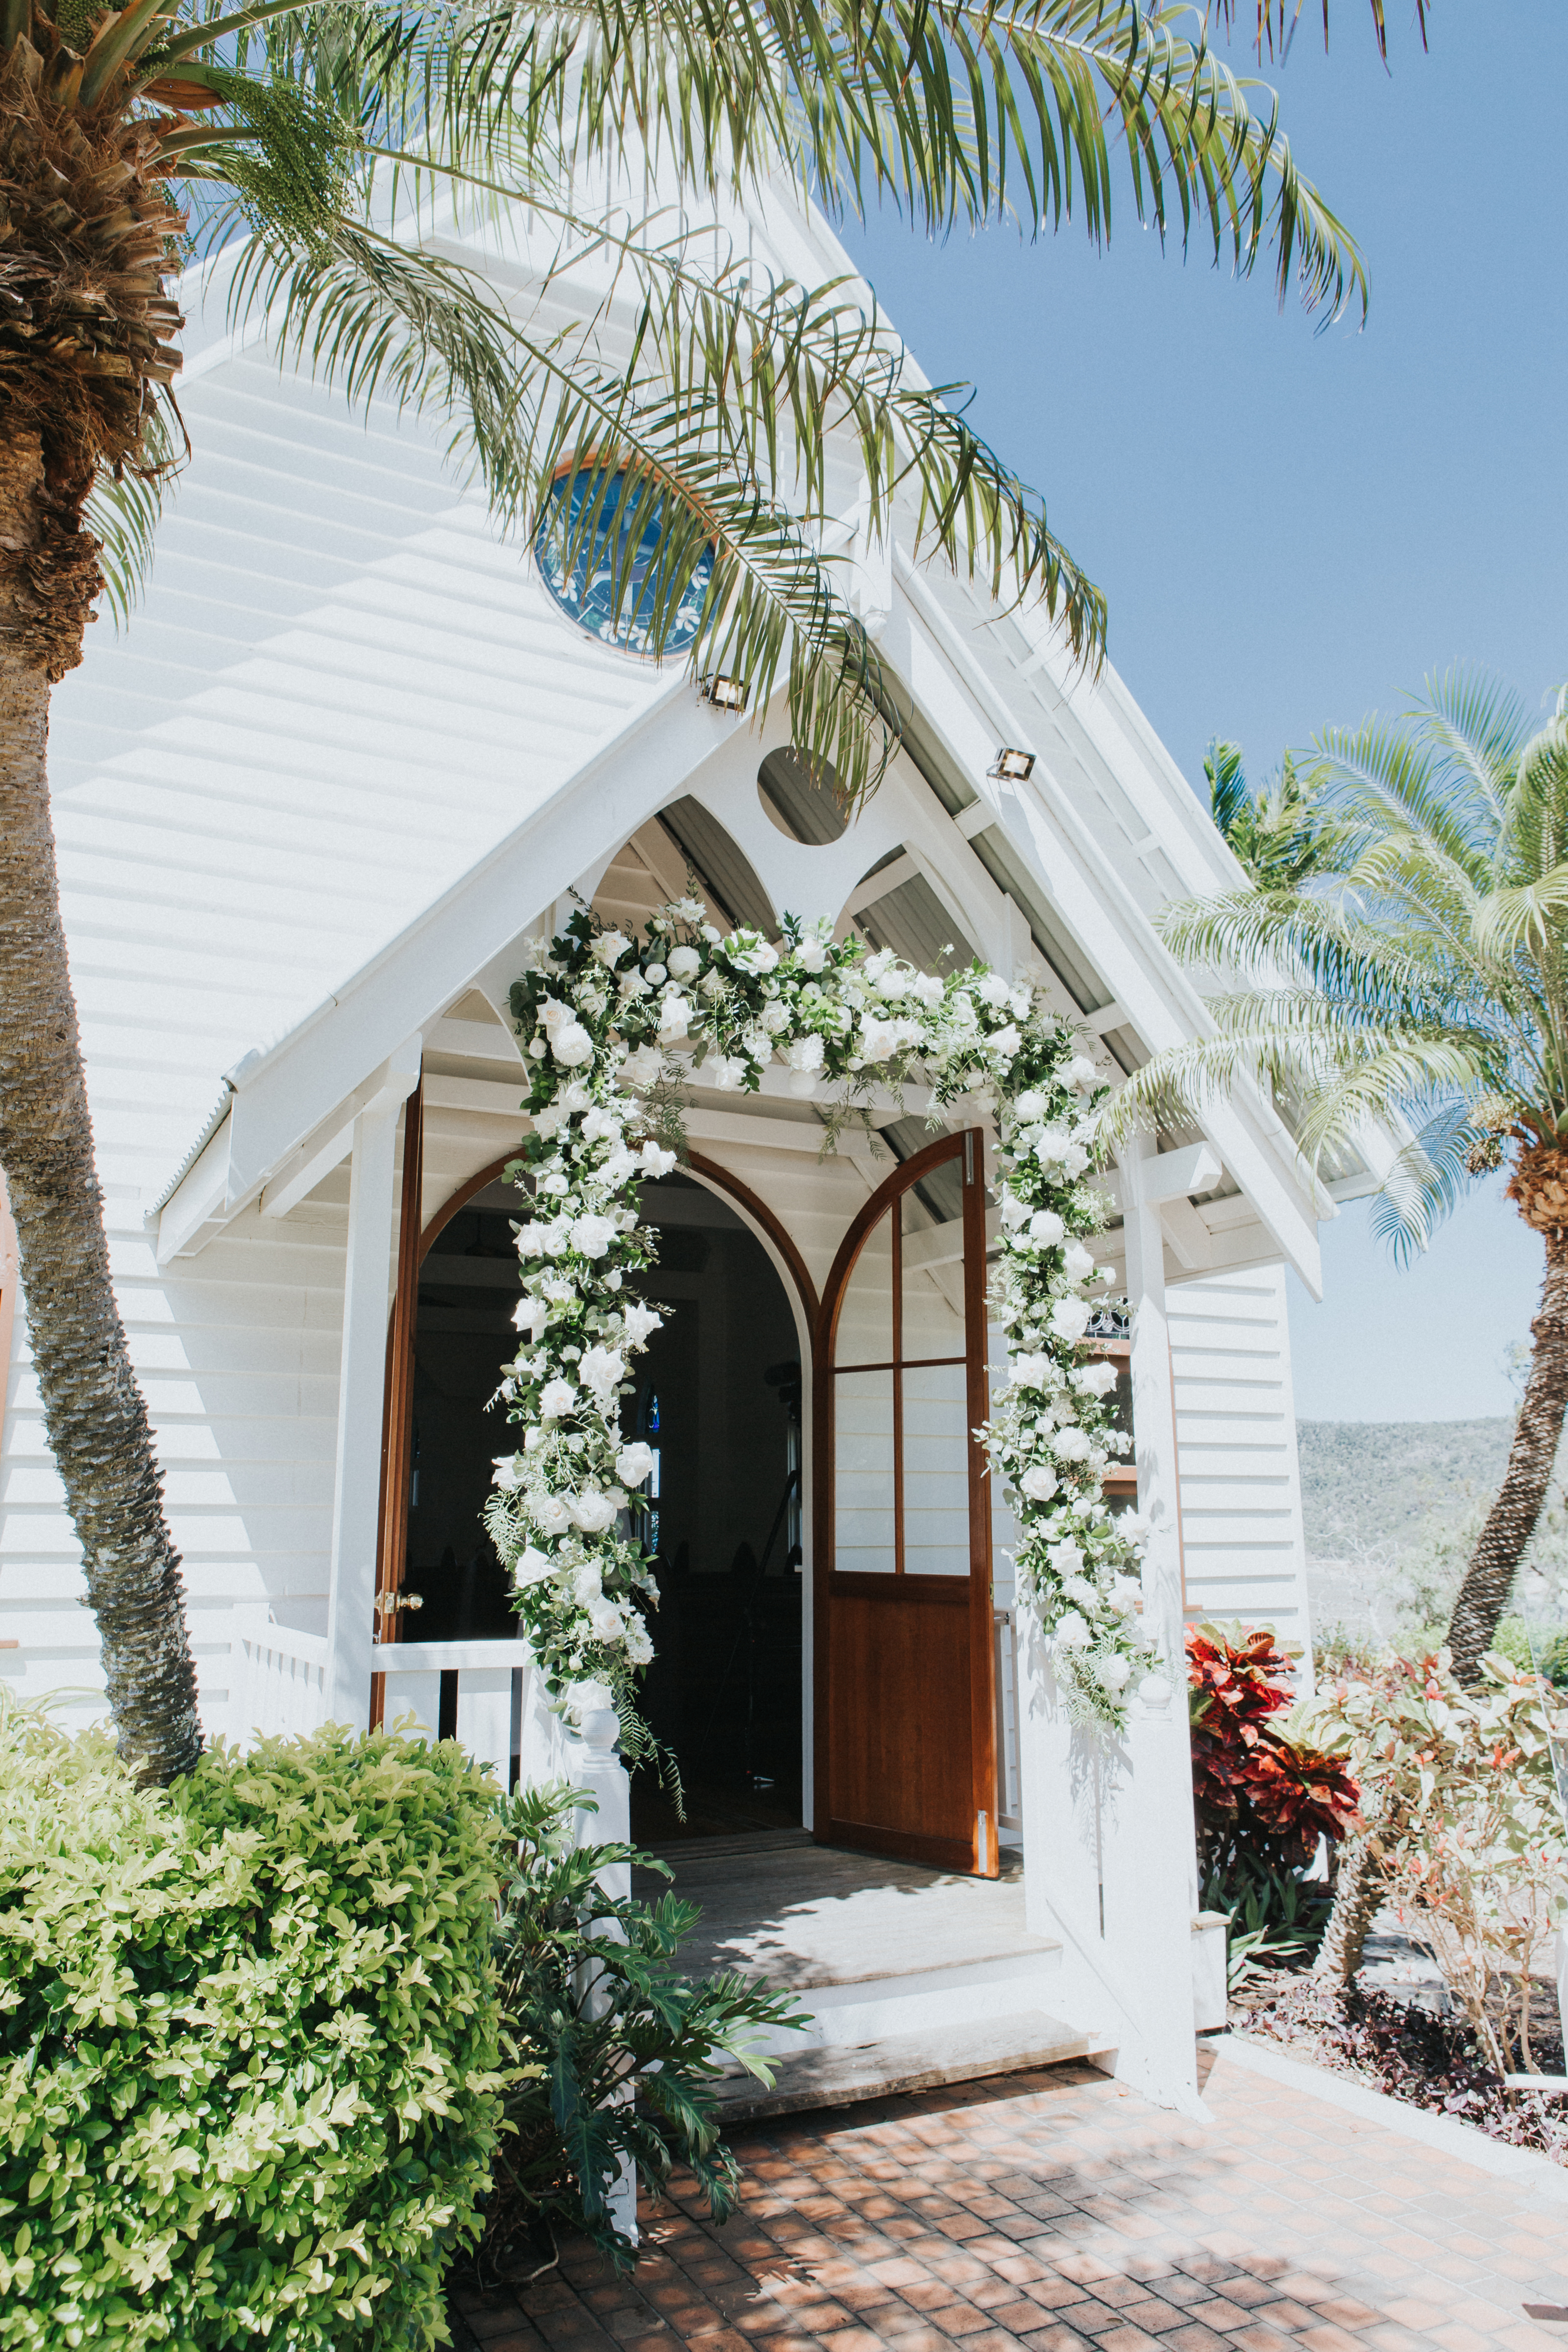 https://www.hamiltonislandweddings.com/wp-content/uploads/2019/02/1810200247.jpg